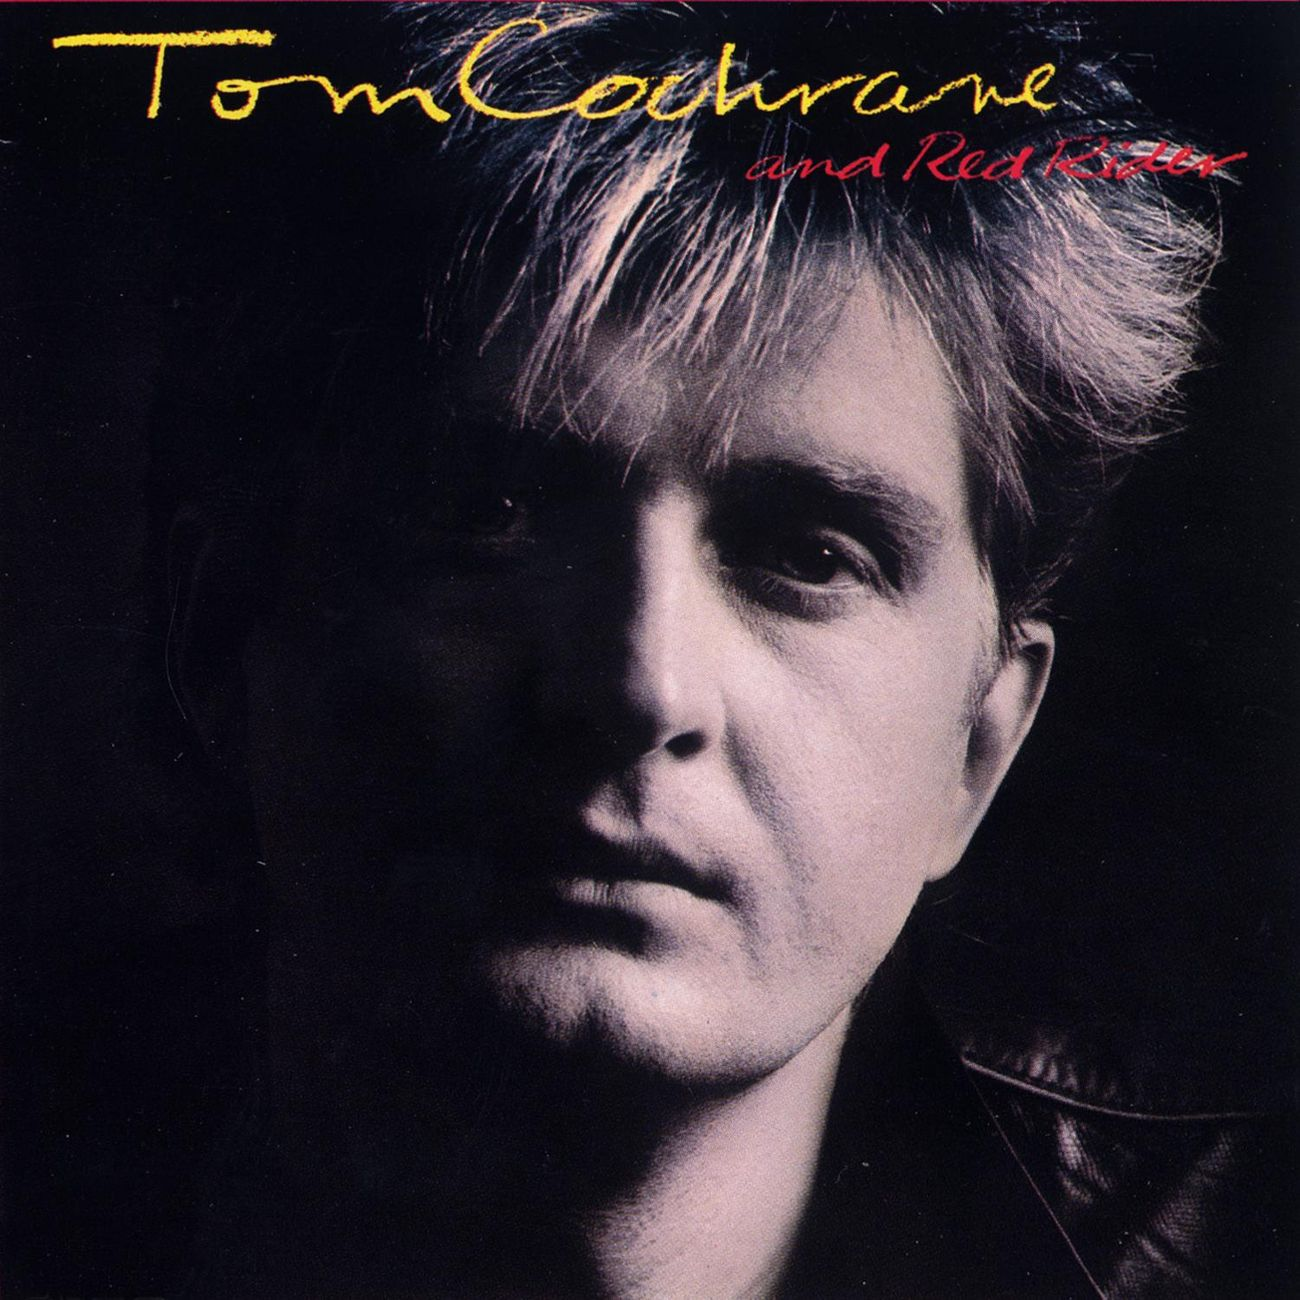 tom cochrane lunatic fringe meaningListen to songs from the album Tom Cochrane And Red Rider of the JQmieoCg